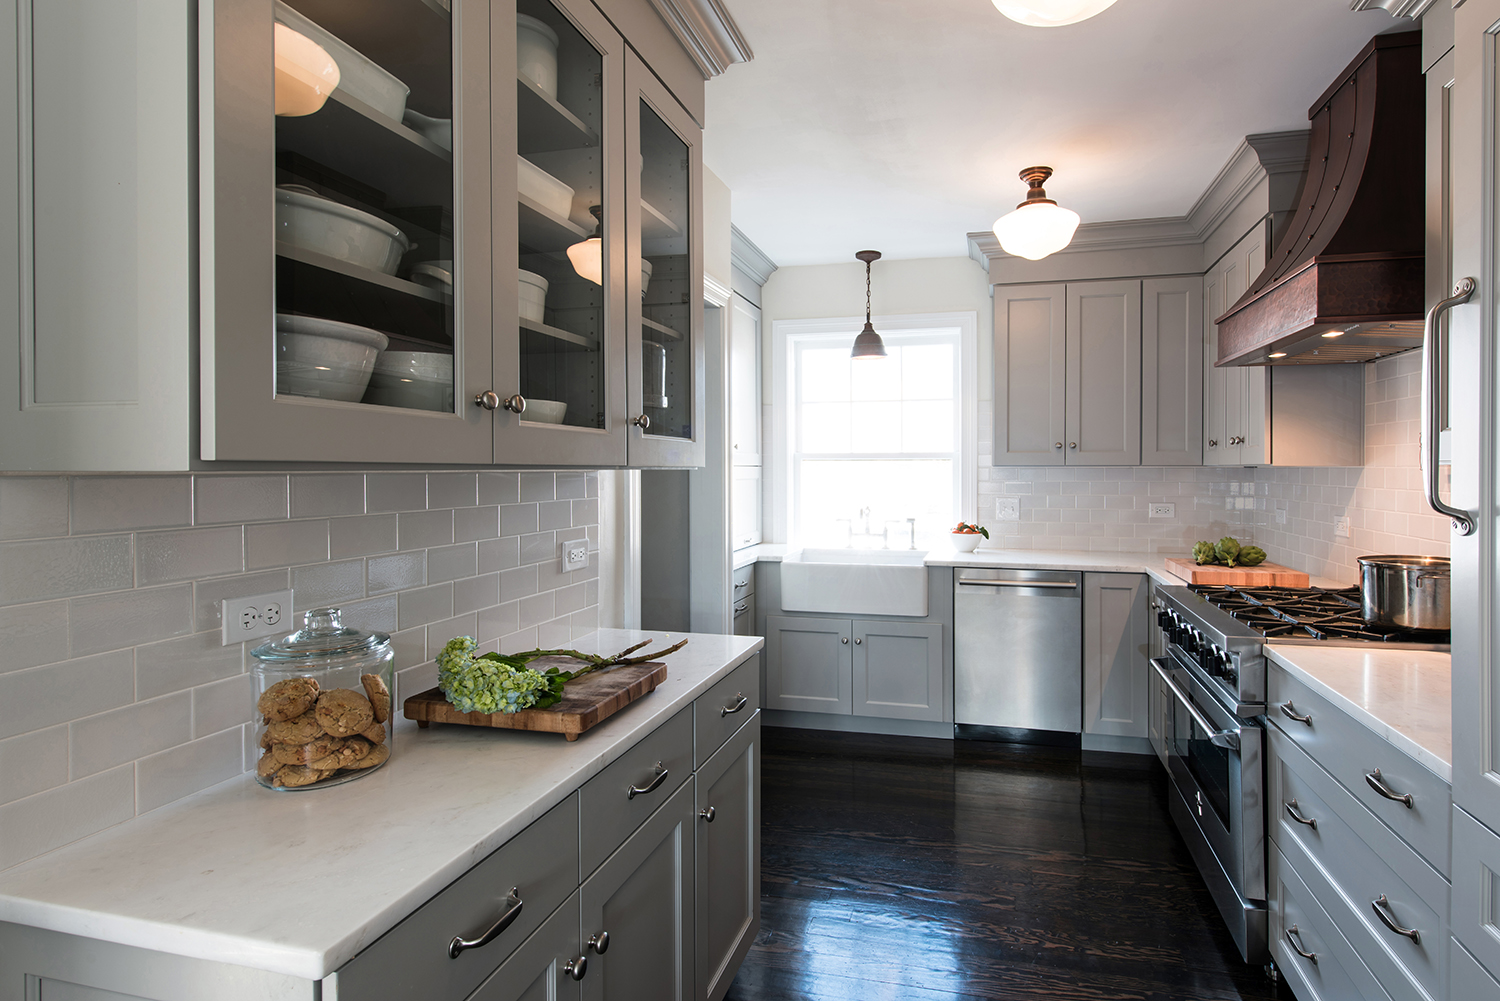 Modern-Country-Inspired-Kitchen-Cabinet-View.jpg